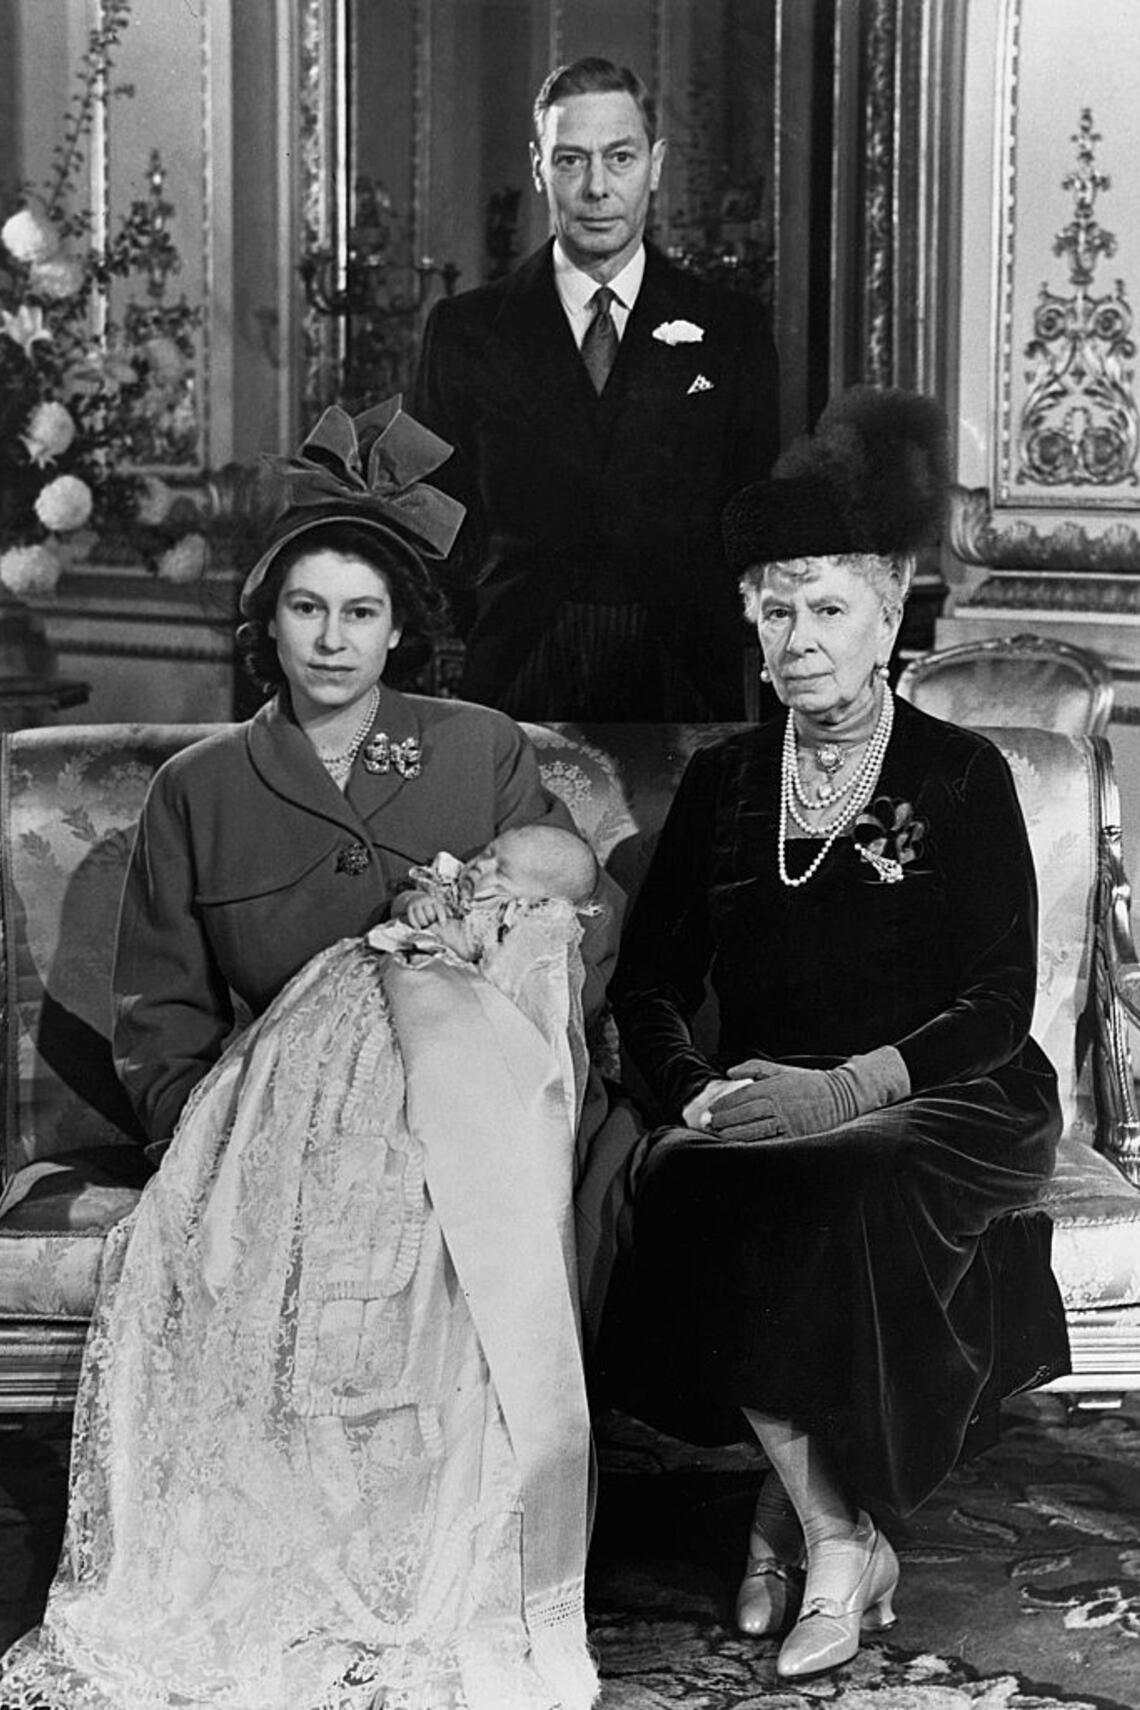 Four generations of the Royal Family pose for a photograph after the christening of Princess Elizabeth's baby son, Prince Charles. The baby's grandfather, King George VI and great grandmother, Queen Mary are present. (Photo by © Hulton-Deutsch Collection/CORBIS/Corbis via Getty Images)